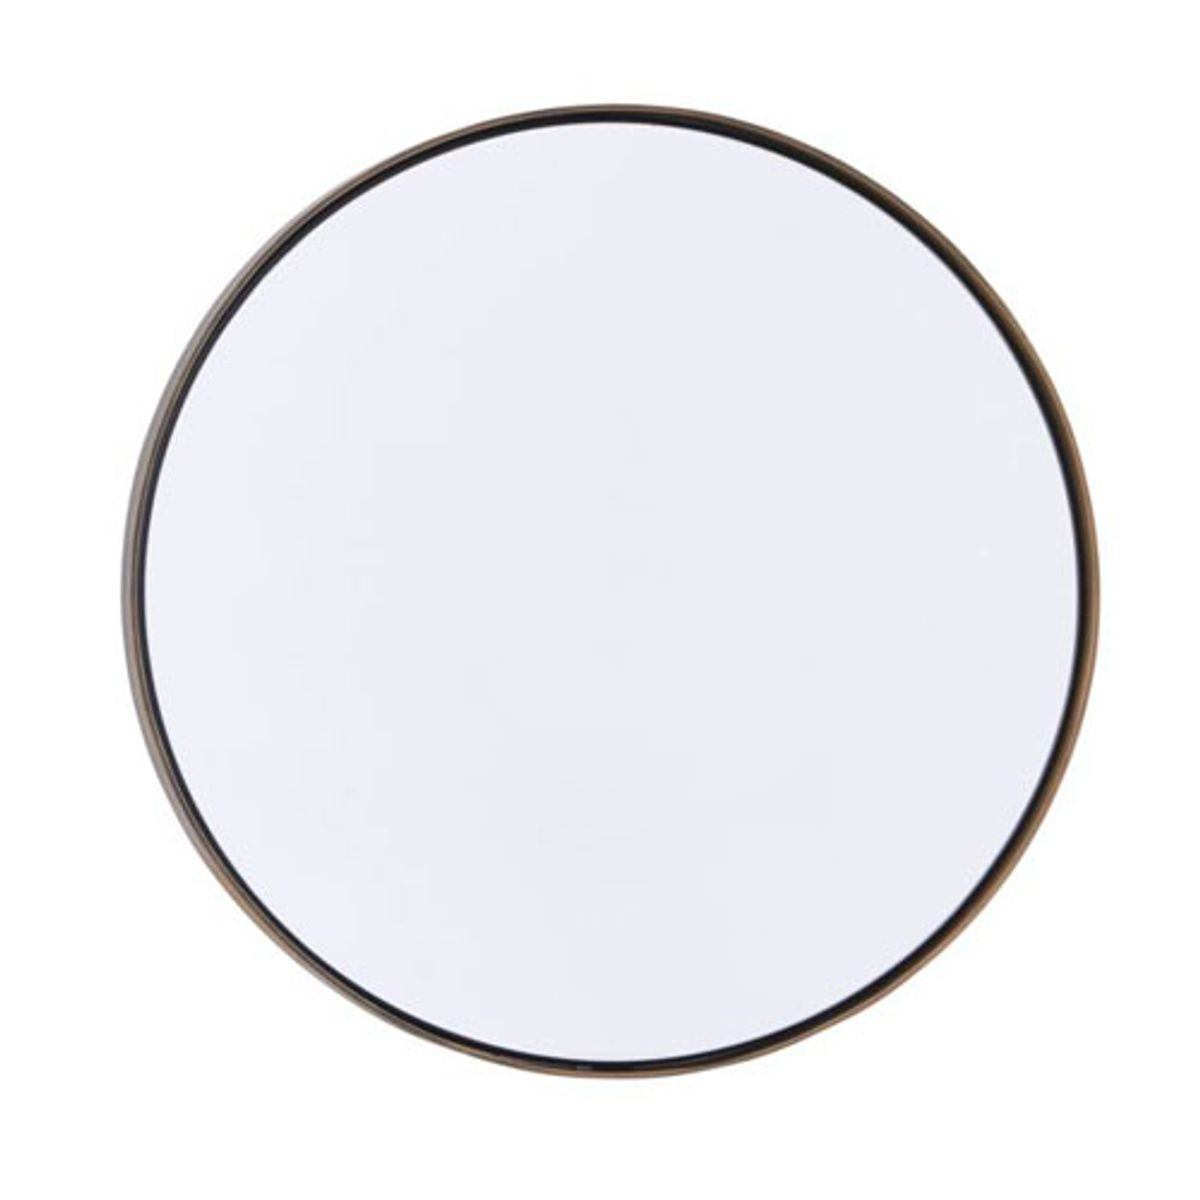 Miroir rond cadre finition laiton Reflektion House Doctor